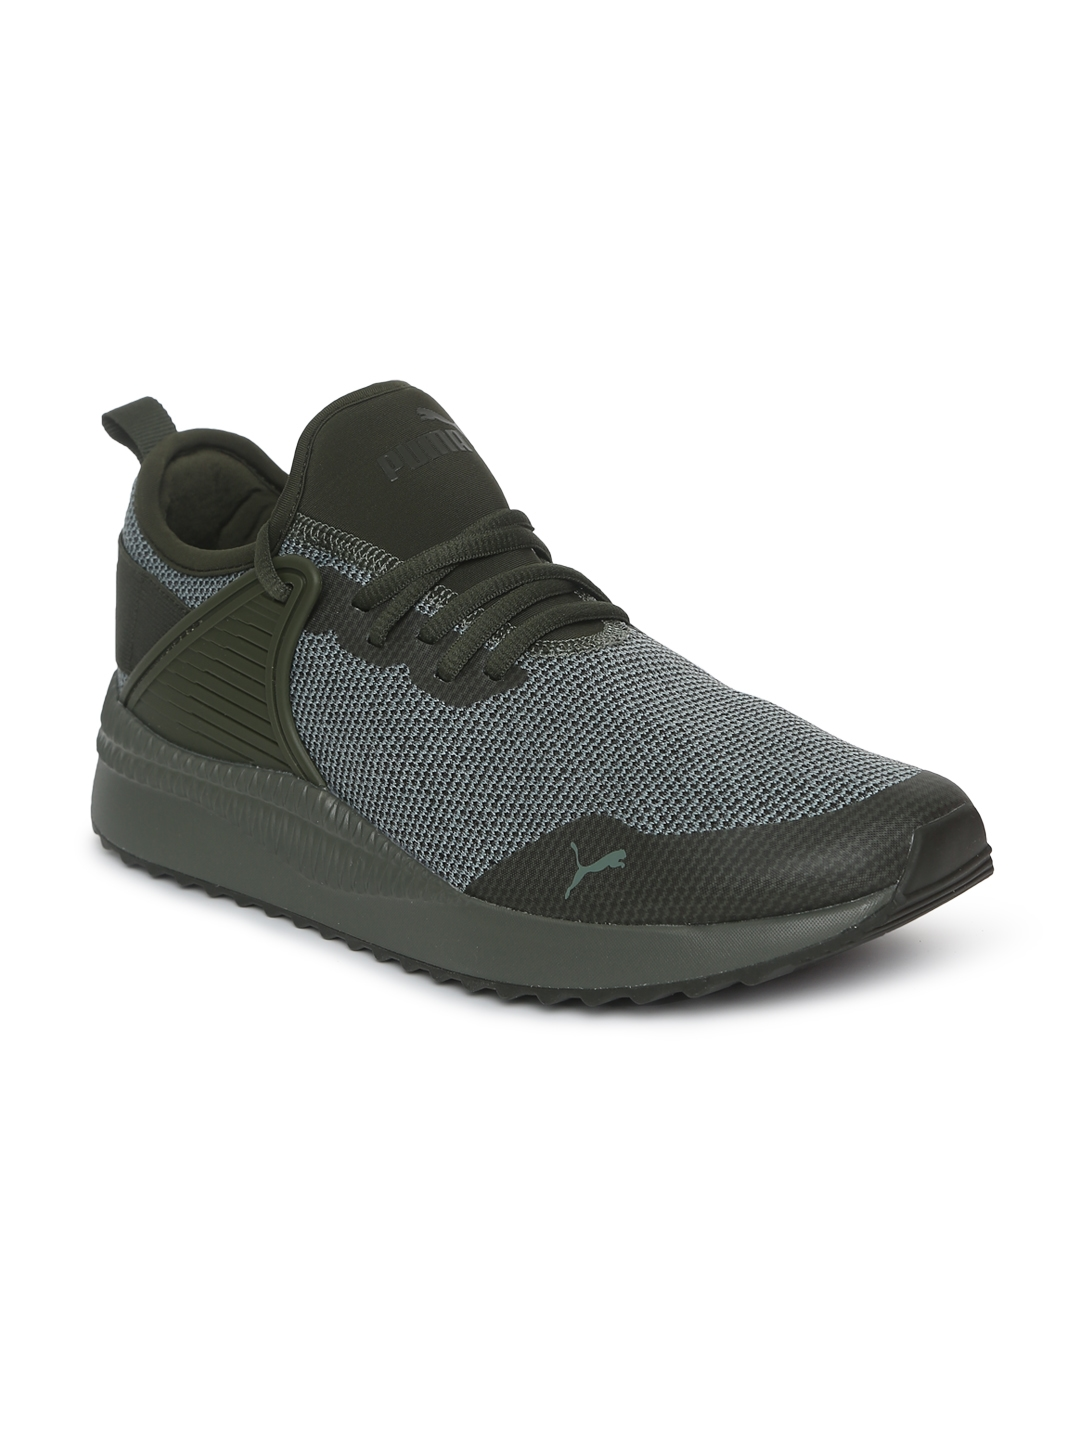 Puma Kids Grey   Olive Green Colourblocked Pacer Next Cage Knitted Sneakers bf623acca